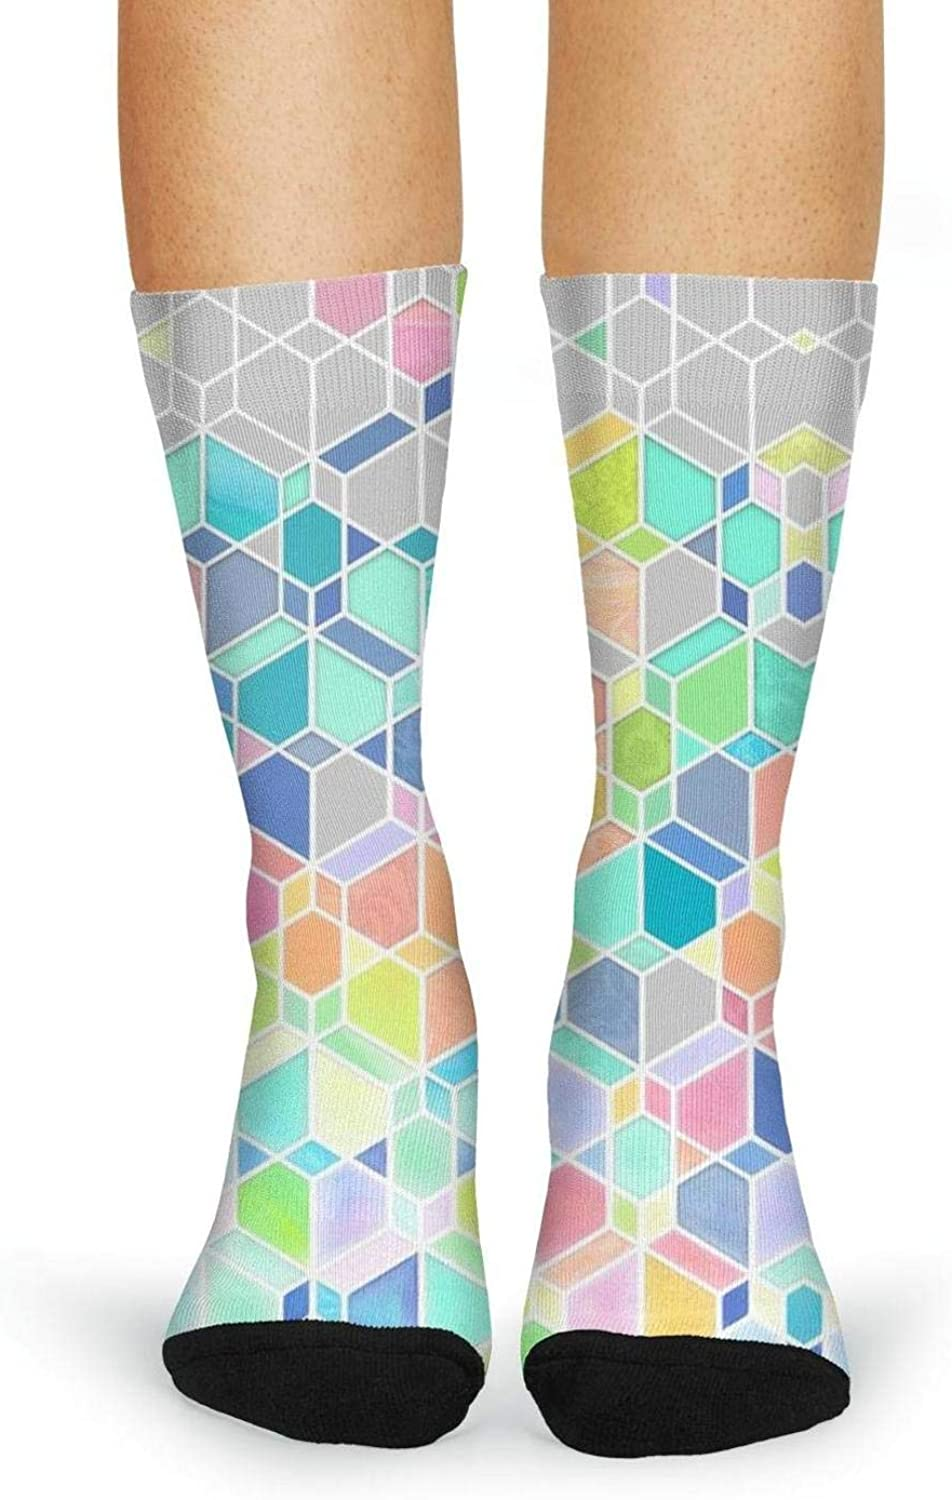 XIdan-die Womens Over-the-Calf Tube Socks Rainbow Cubes And Diamonds Moisture Wicking Casual Socks